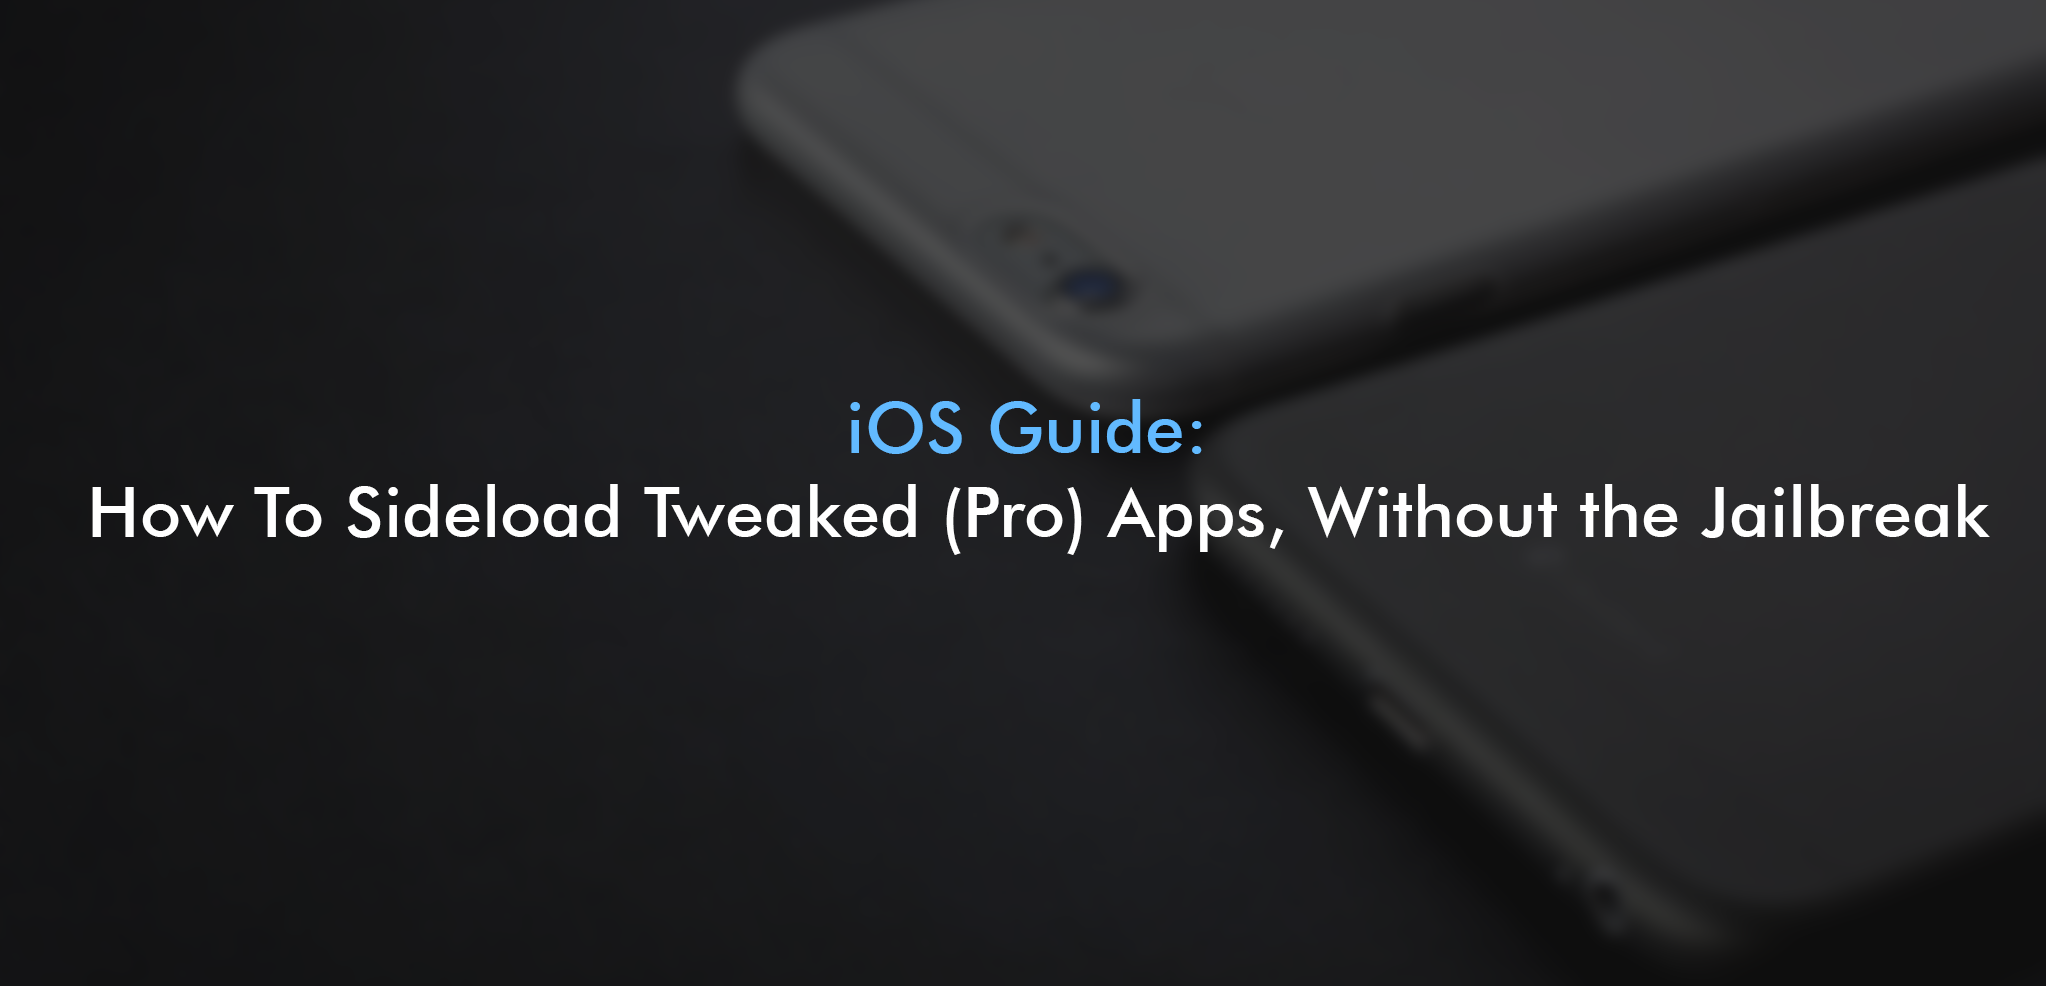 iOS Guide: How To Sideload Tweaked (Pro) Apps, Without the Jailbreak!